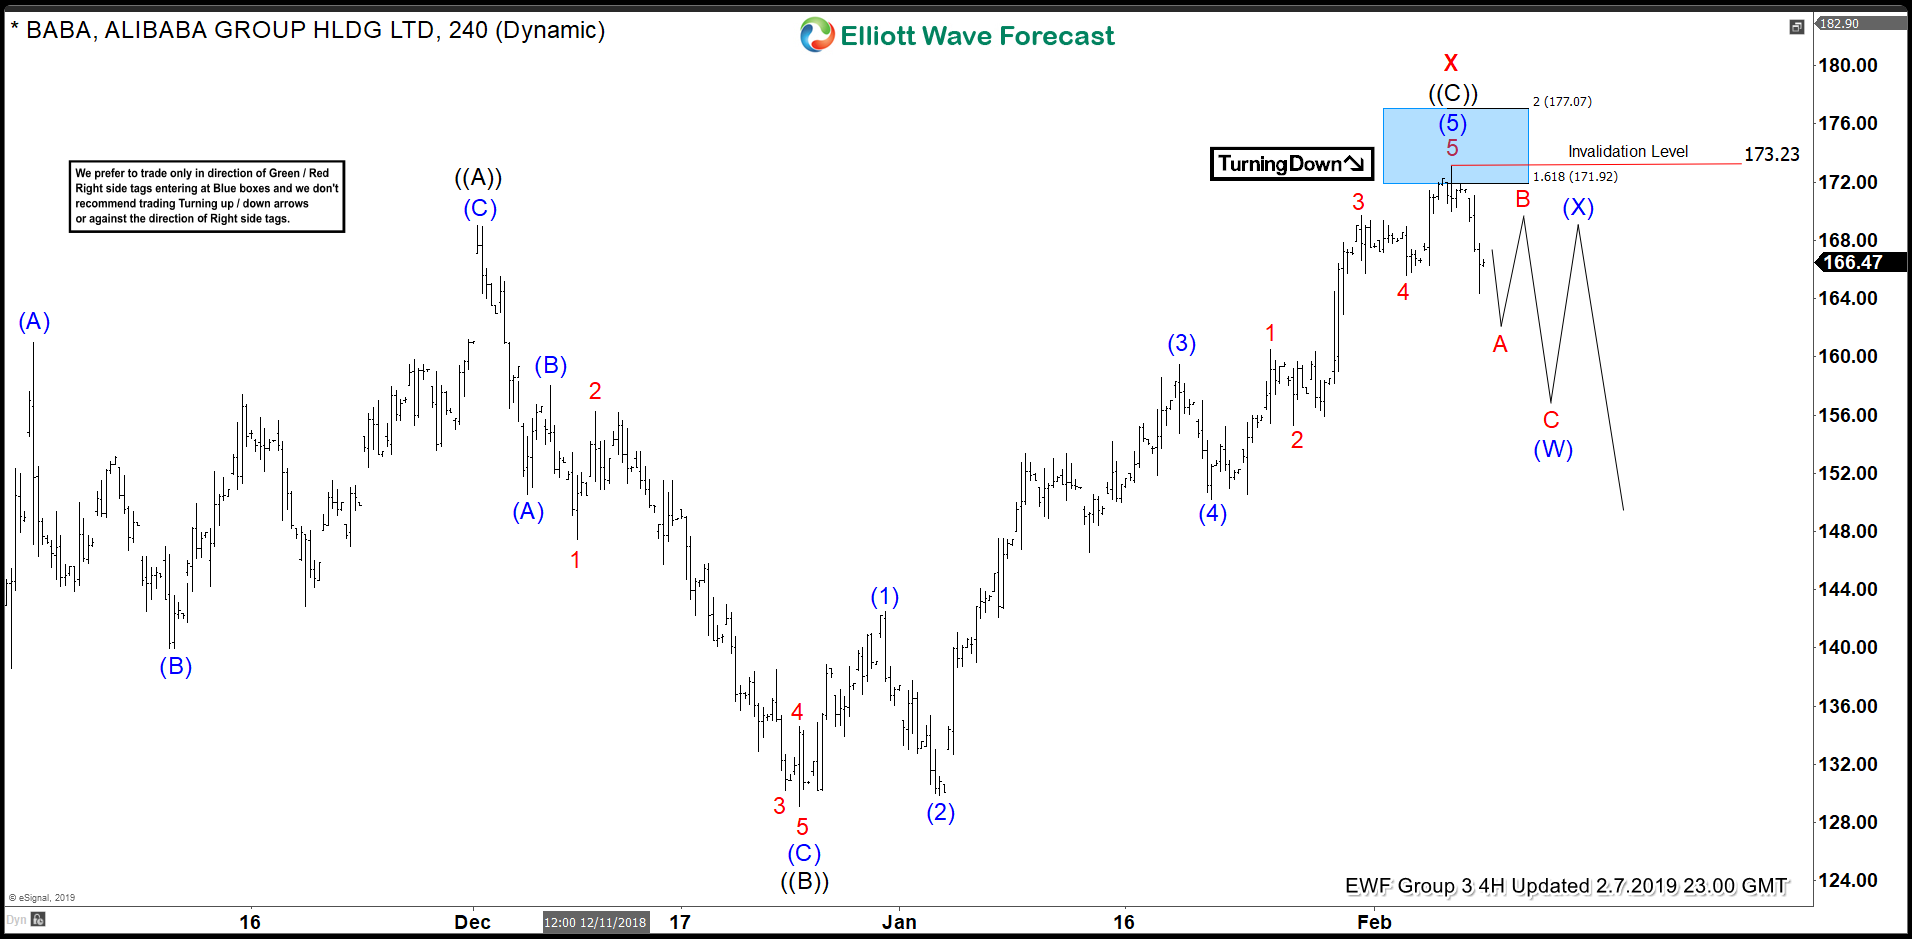 Alibaba Ended Elliott Wave Flat Correction: What's Next?